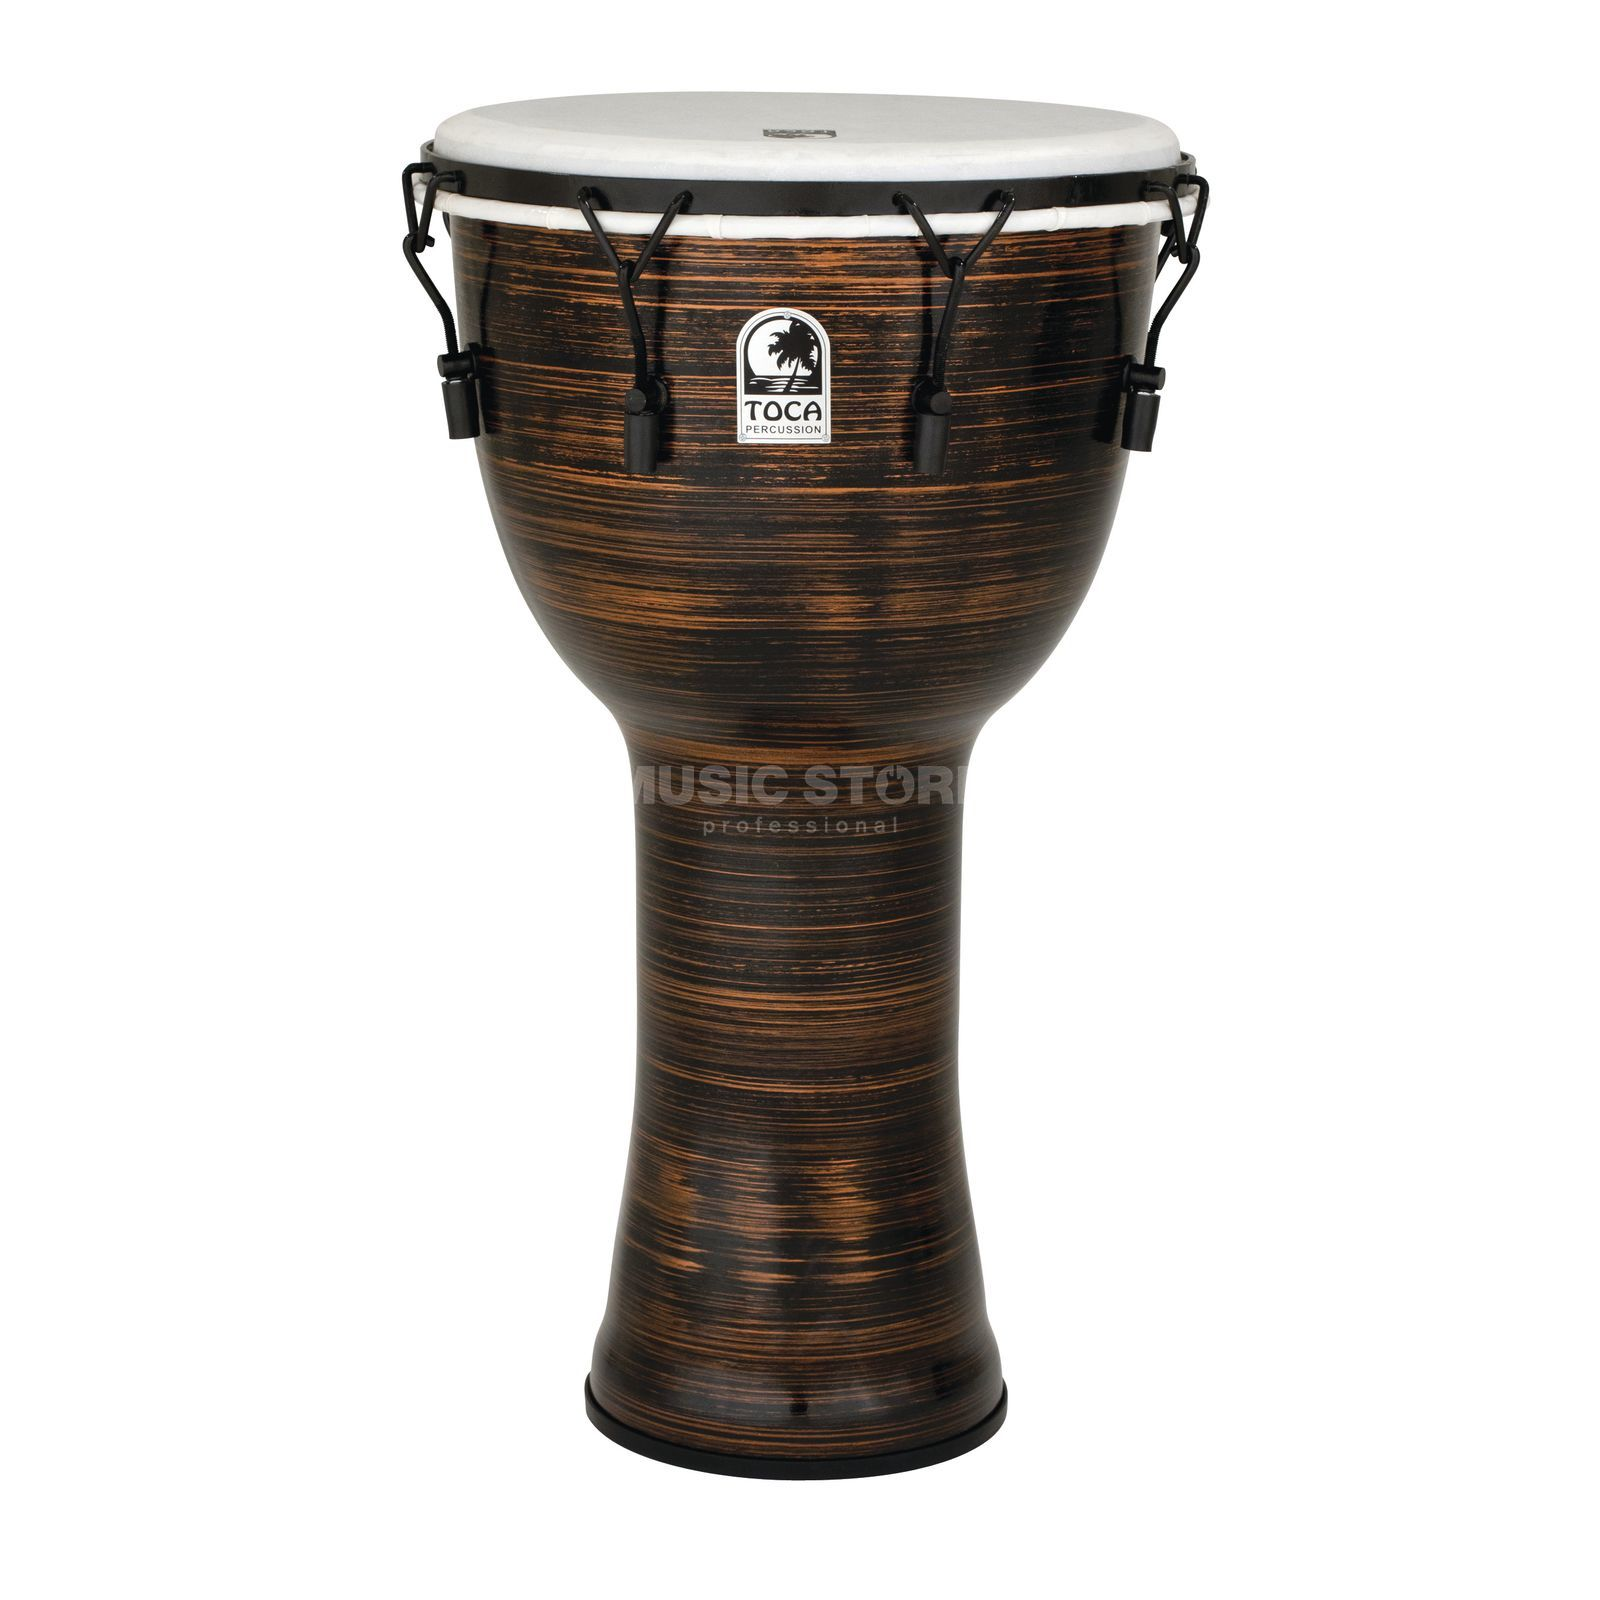 "Toca Percussion Freestyle II Djembe TF2DM-10SC 10"", Key, Spun Copper Produktbild"